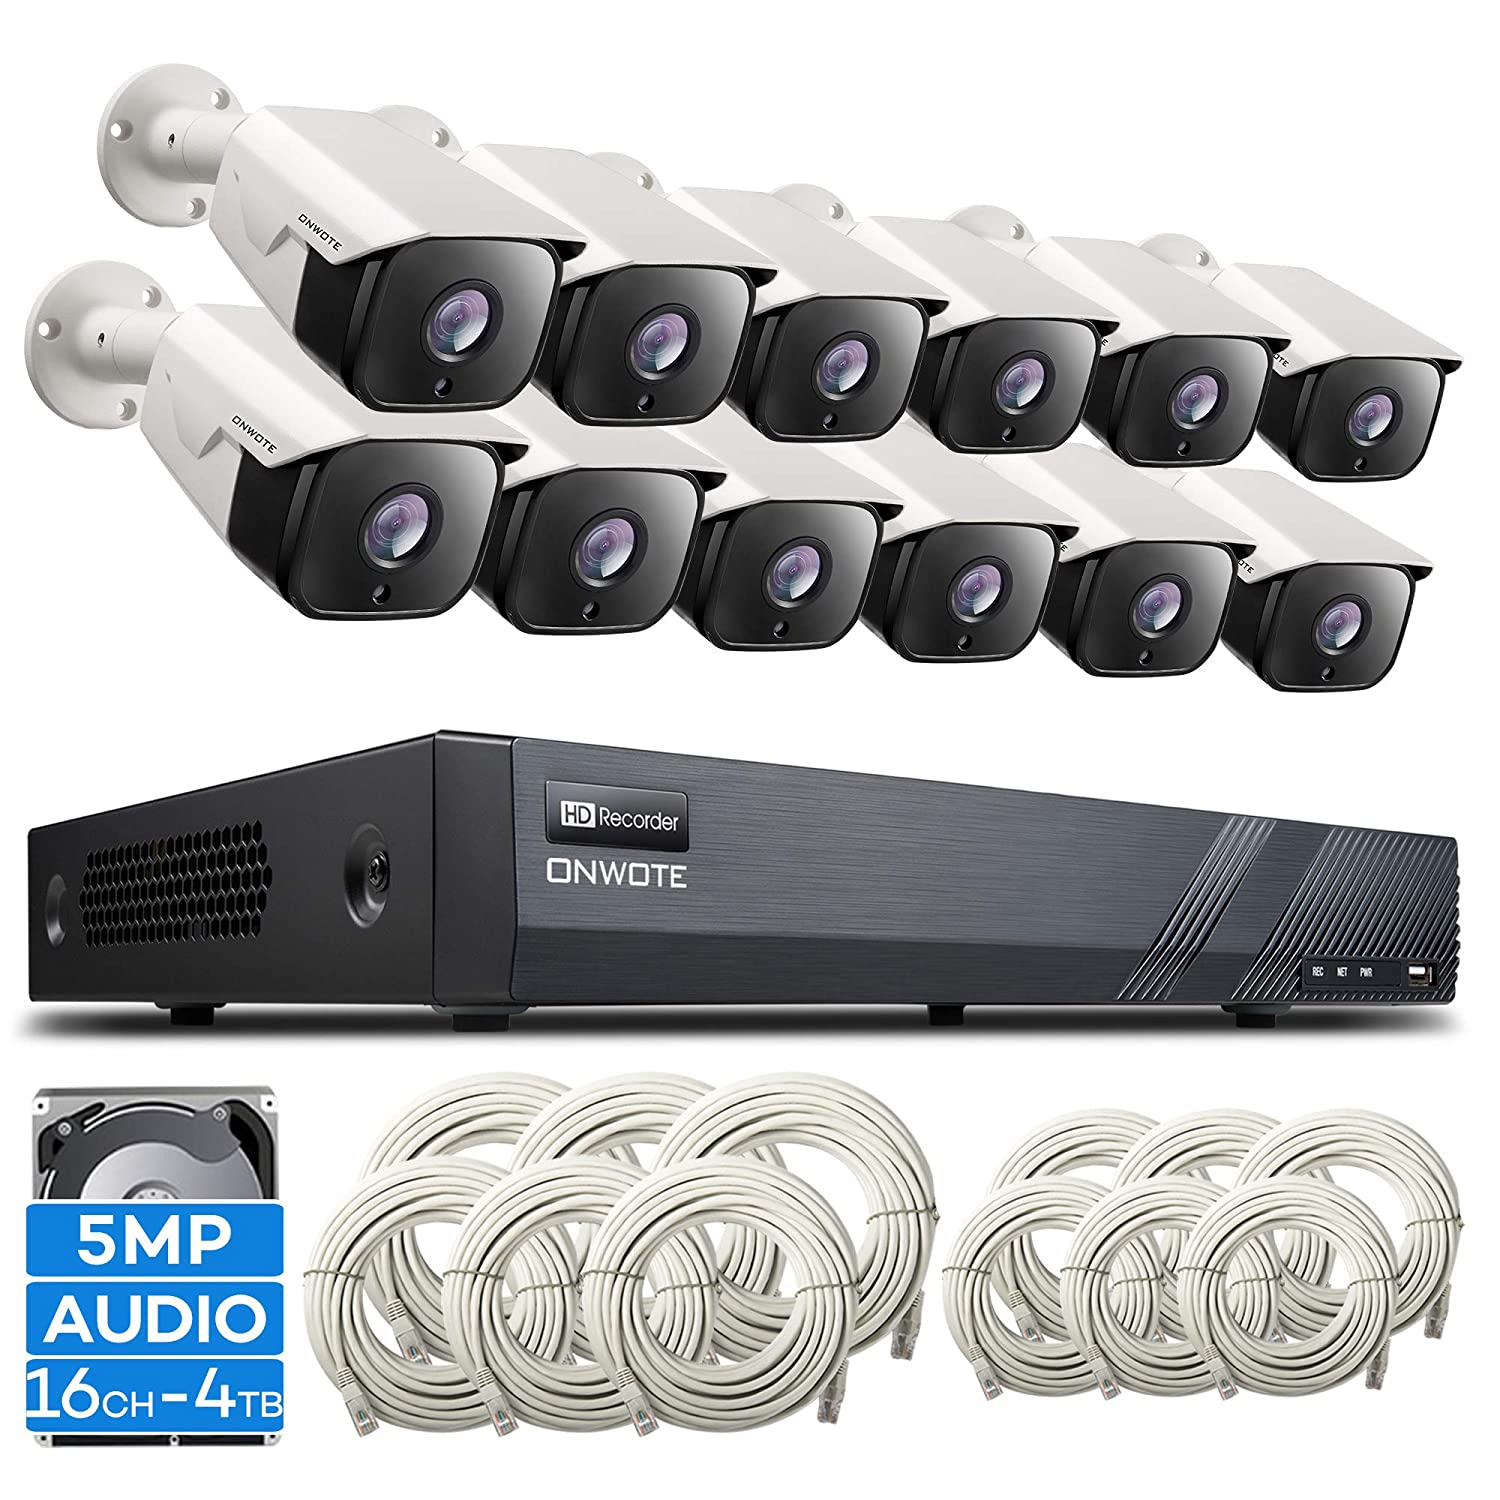 ONWOTE Expandable Audio 16 Channel 5MP PoE Security Camera System with 4TB Hard Drive, 12 Outdoor 5 Megapixels 1944P HD IP PoE Cameras, 16CH 5MP H.265 NVR Home Business Video Surveillance Kit